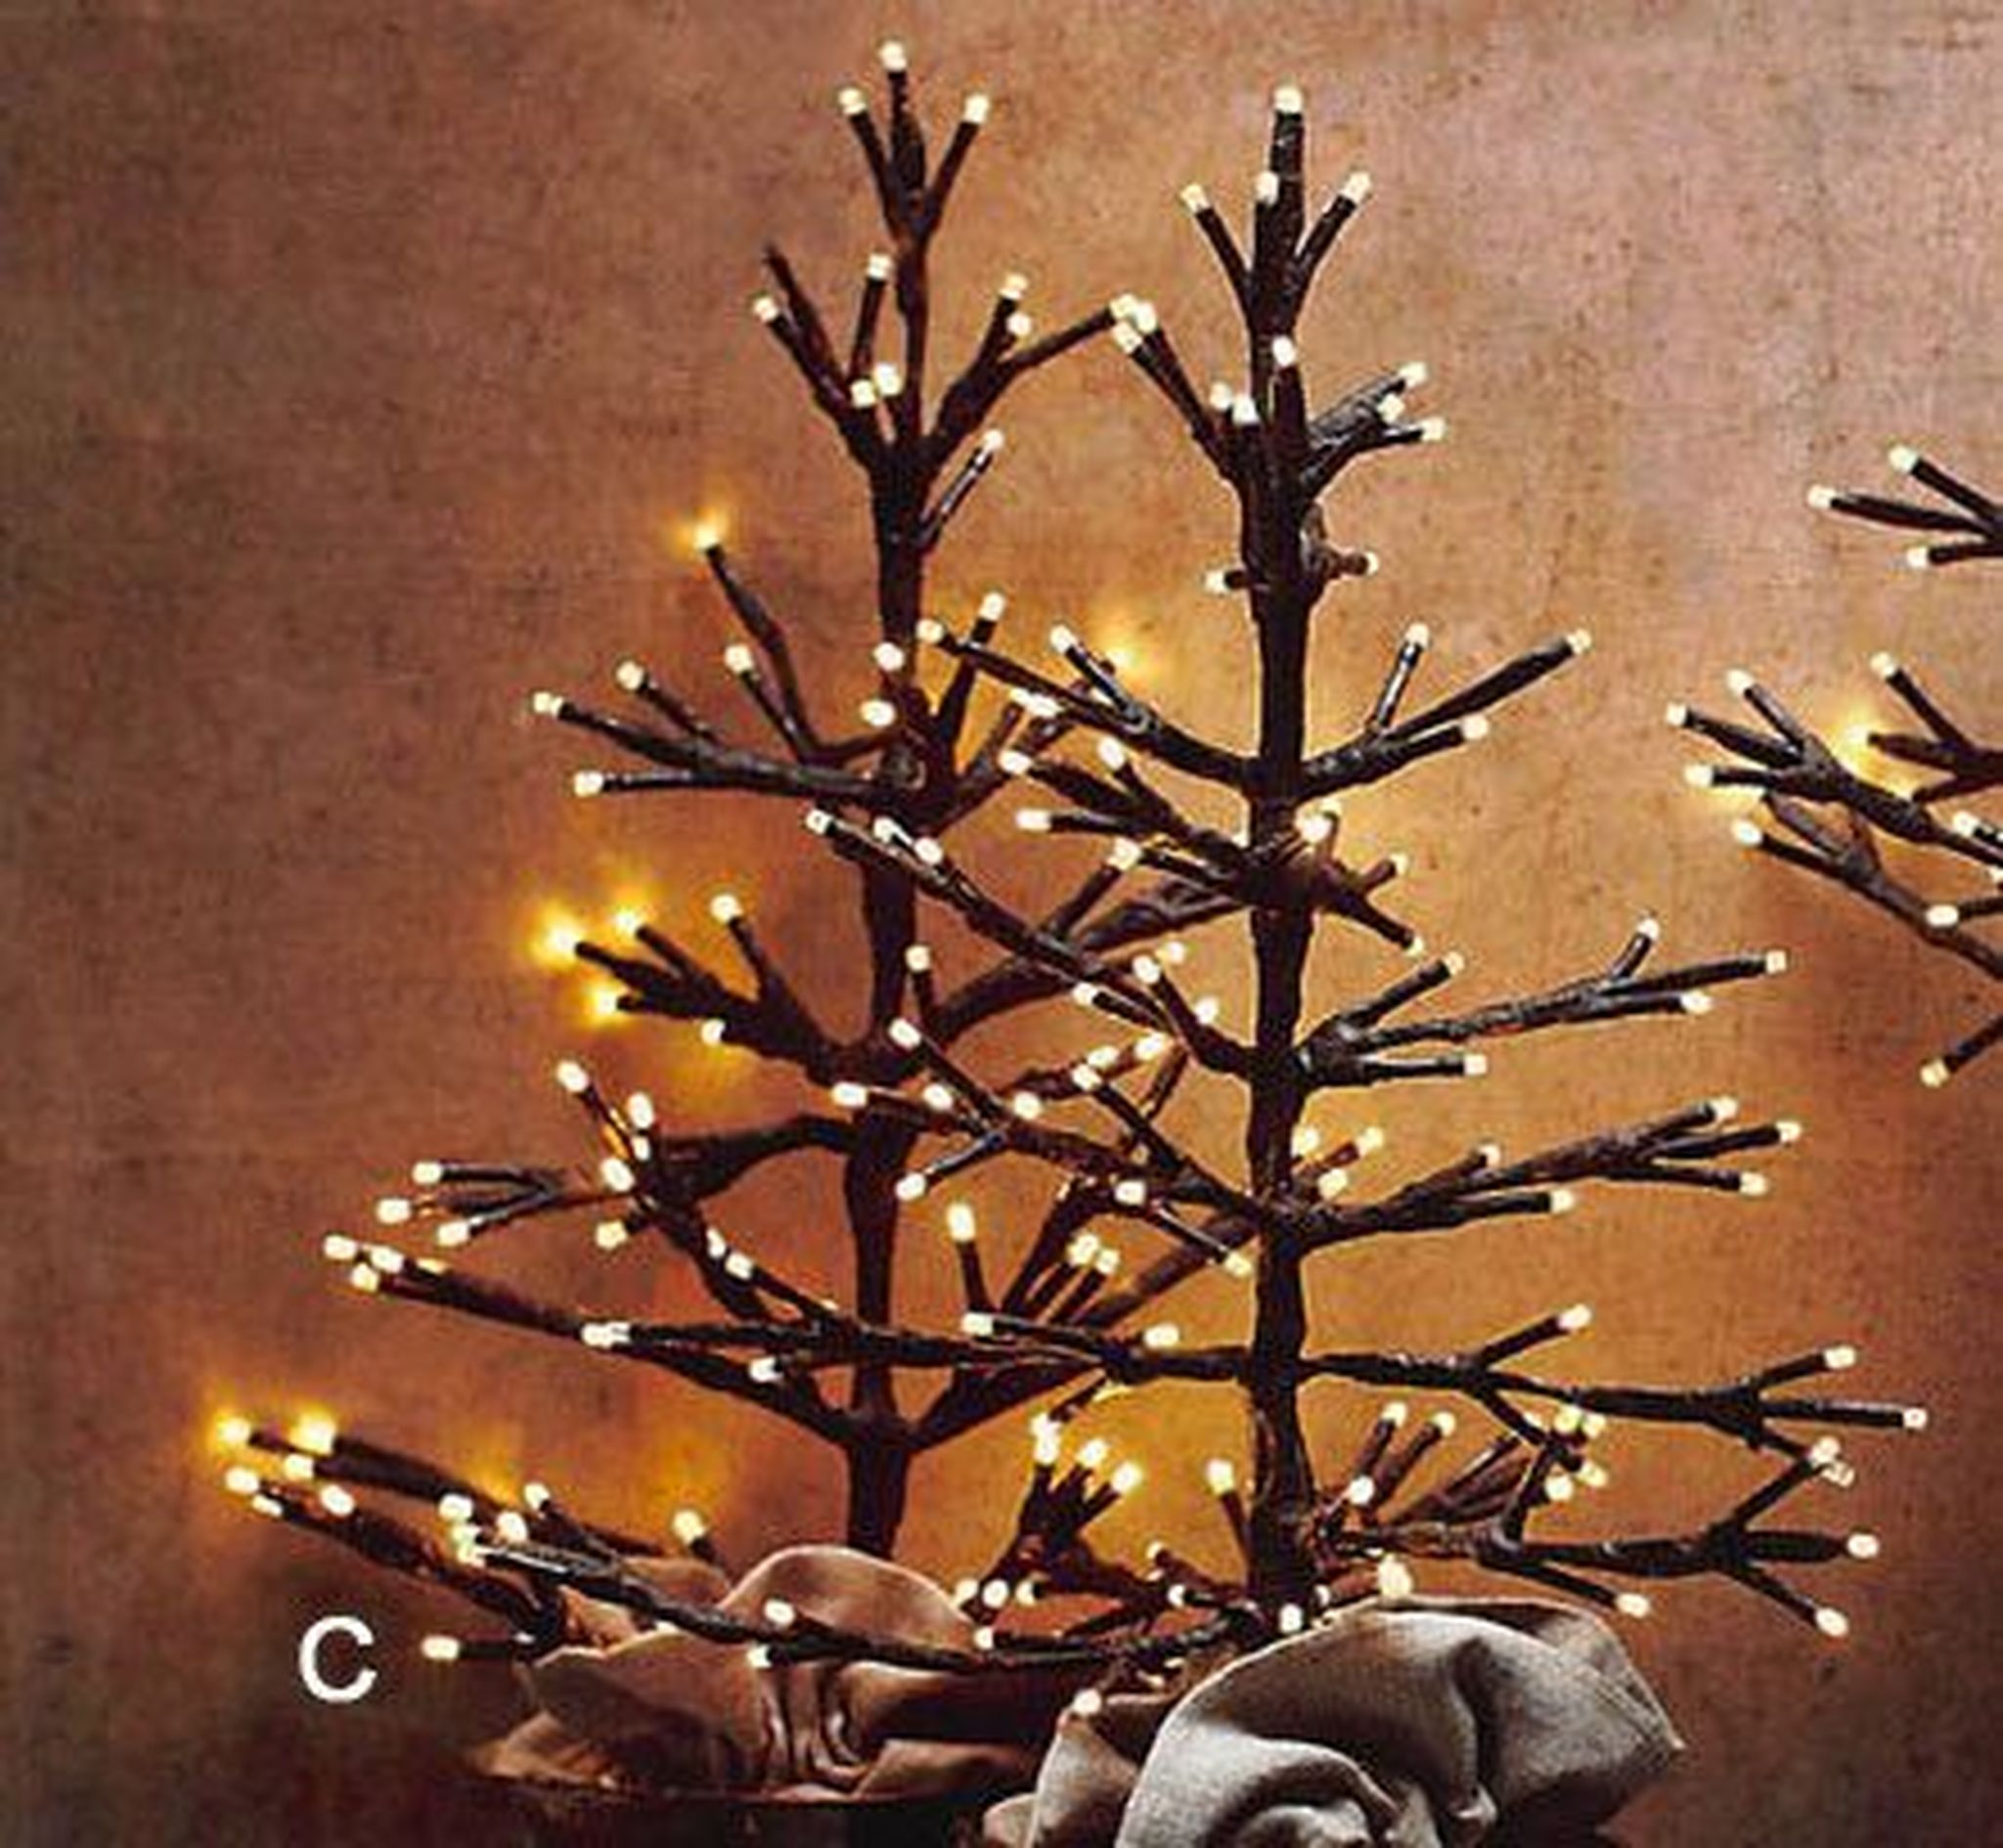 69 00 Roost Tabletop Lighted Tree